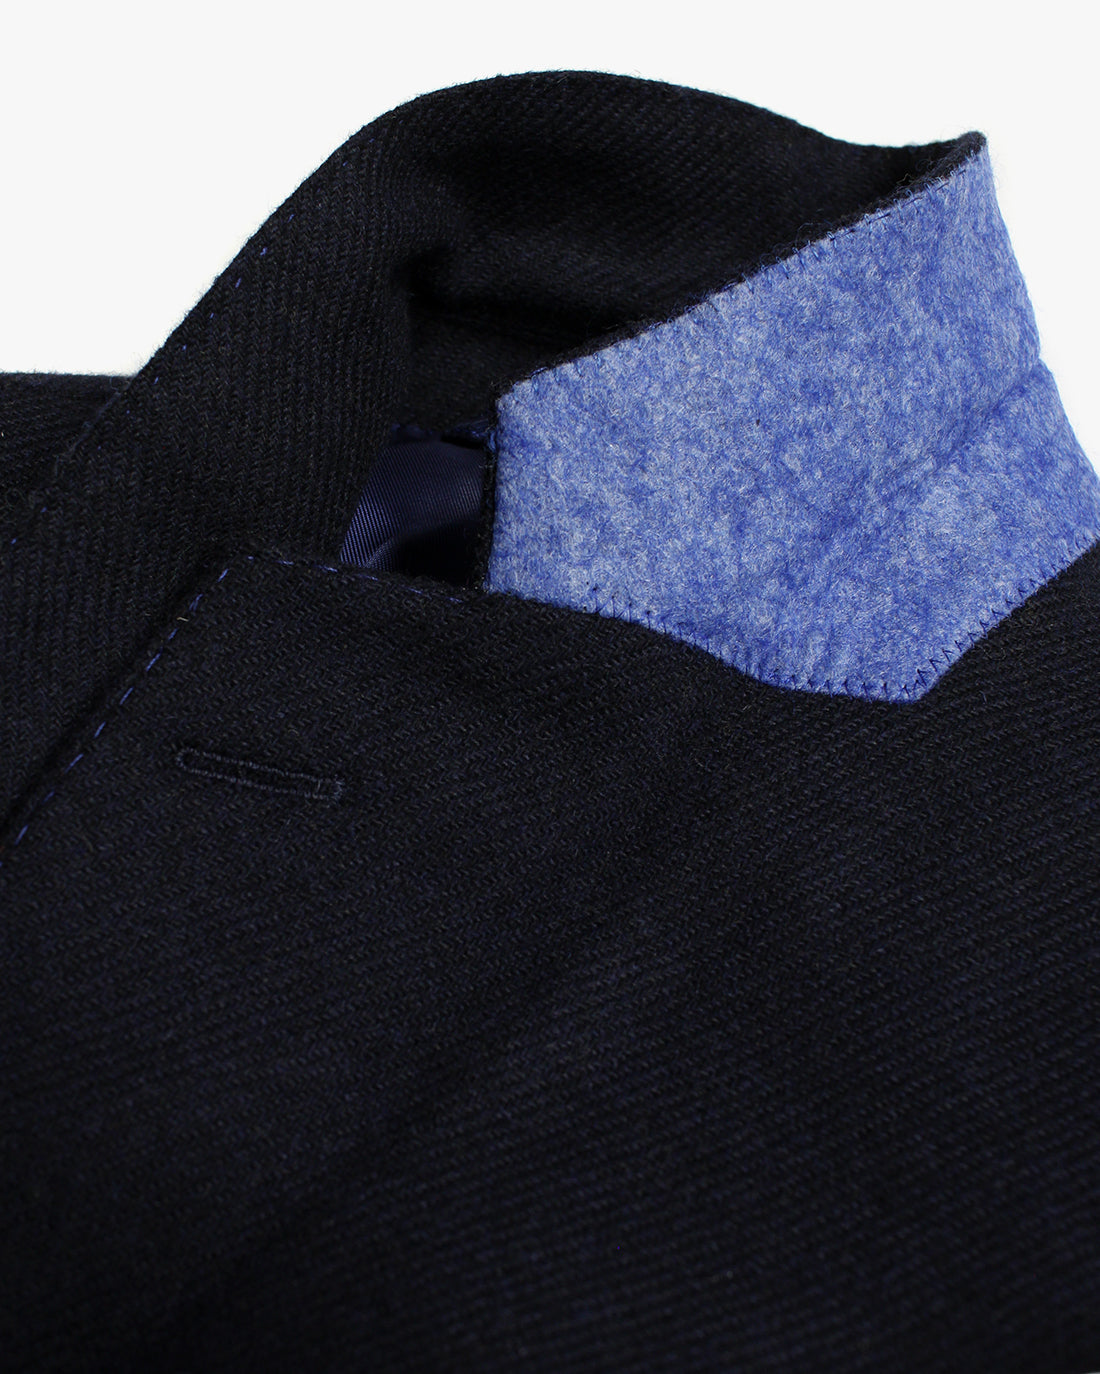 Navy Plain Lambswool Three Piece Suit - Holland Esquire